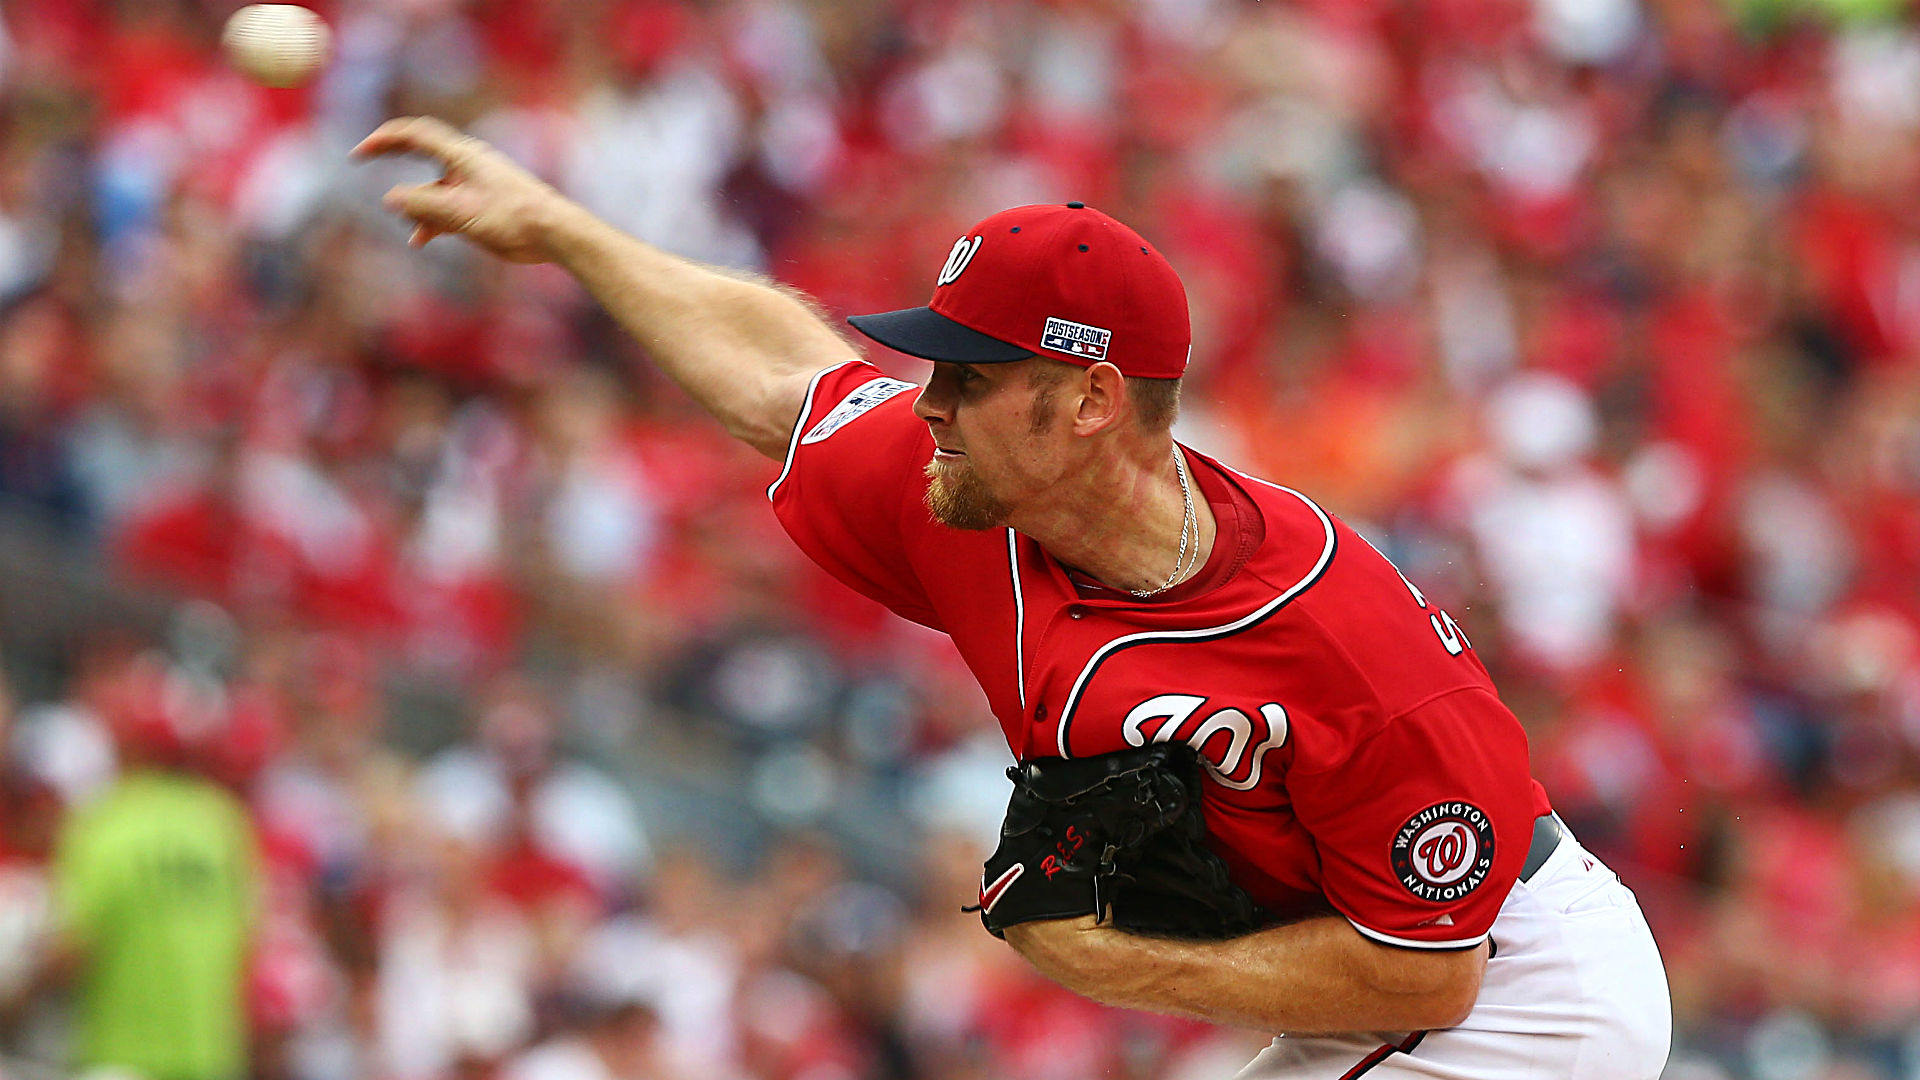 Stephen Strasburg returns to disabled list, this time with oblique strain